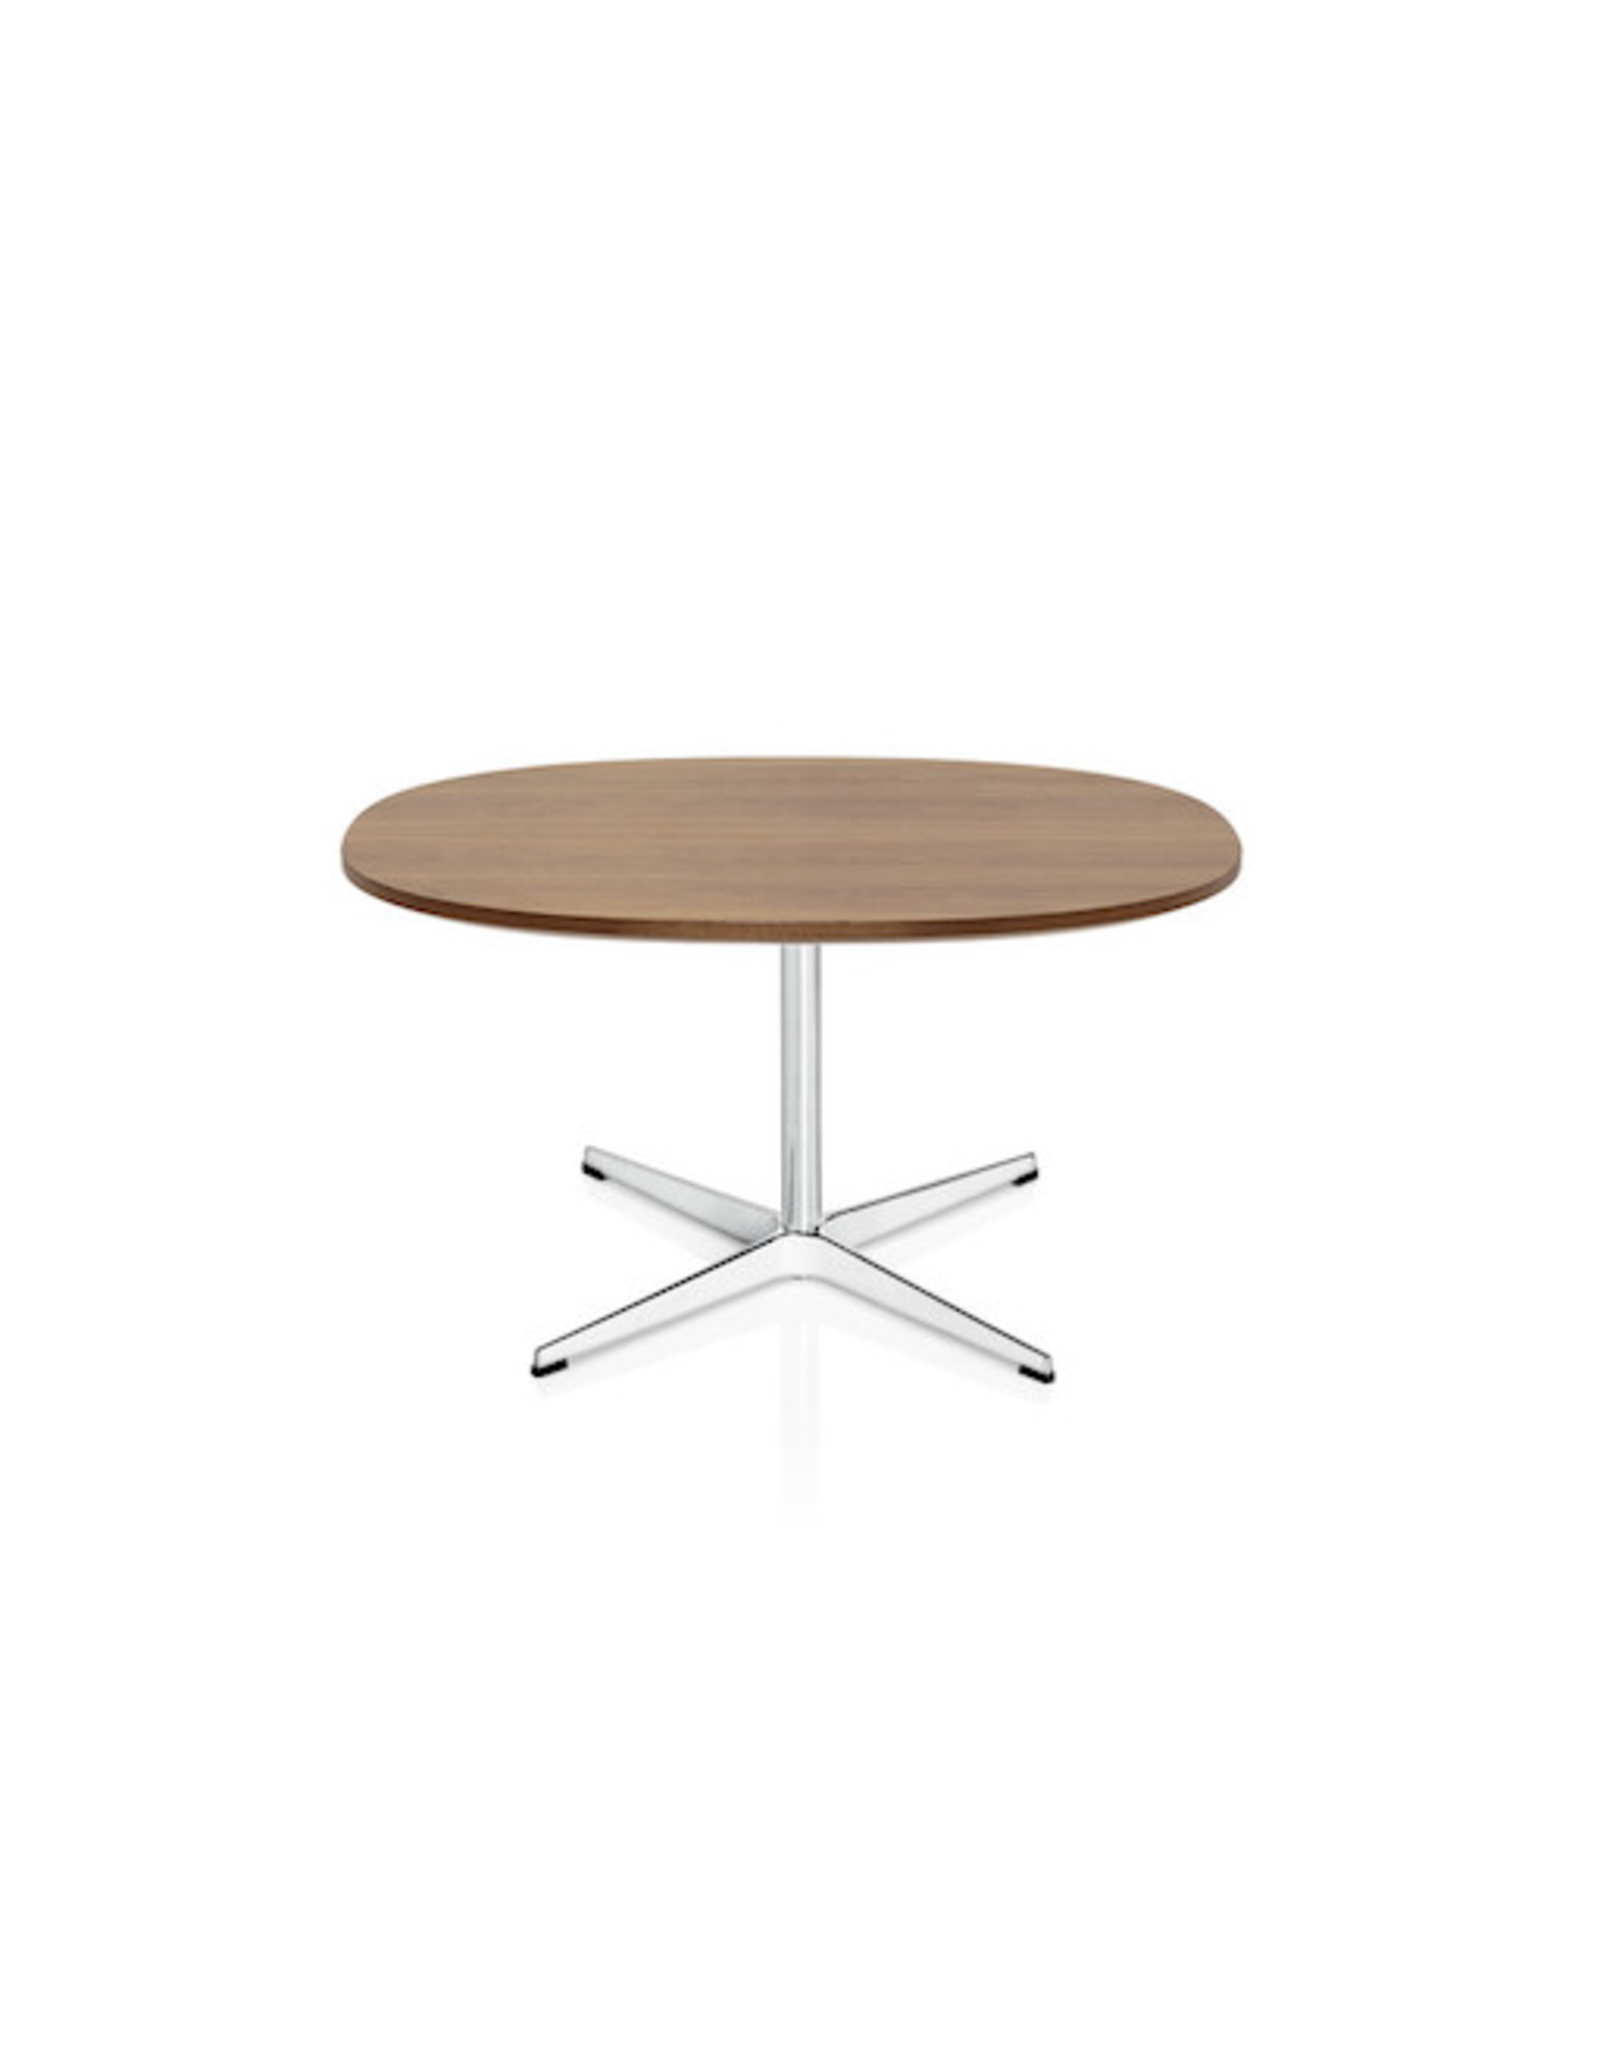 FRITZ HANSEN A203 SUPERCIRCULAR COFFEE TABLE, WALNUT TOP